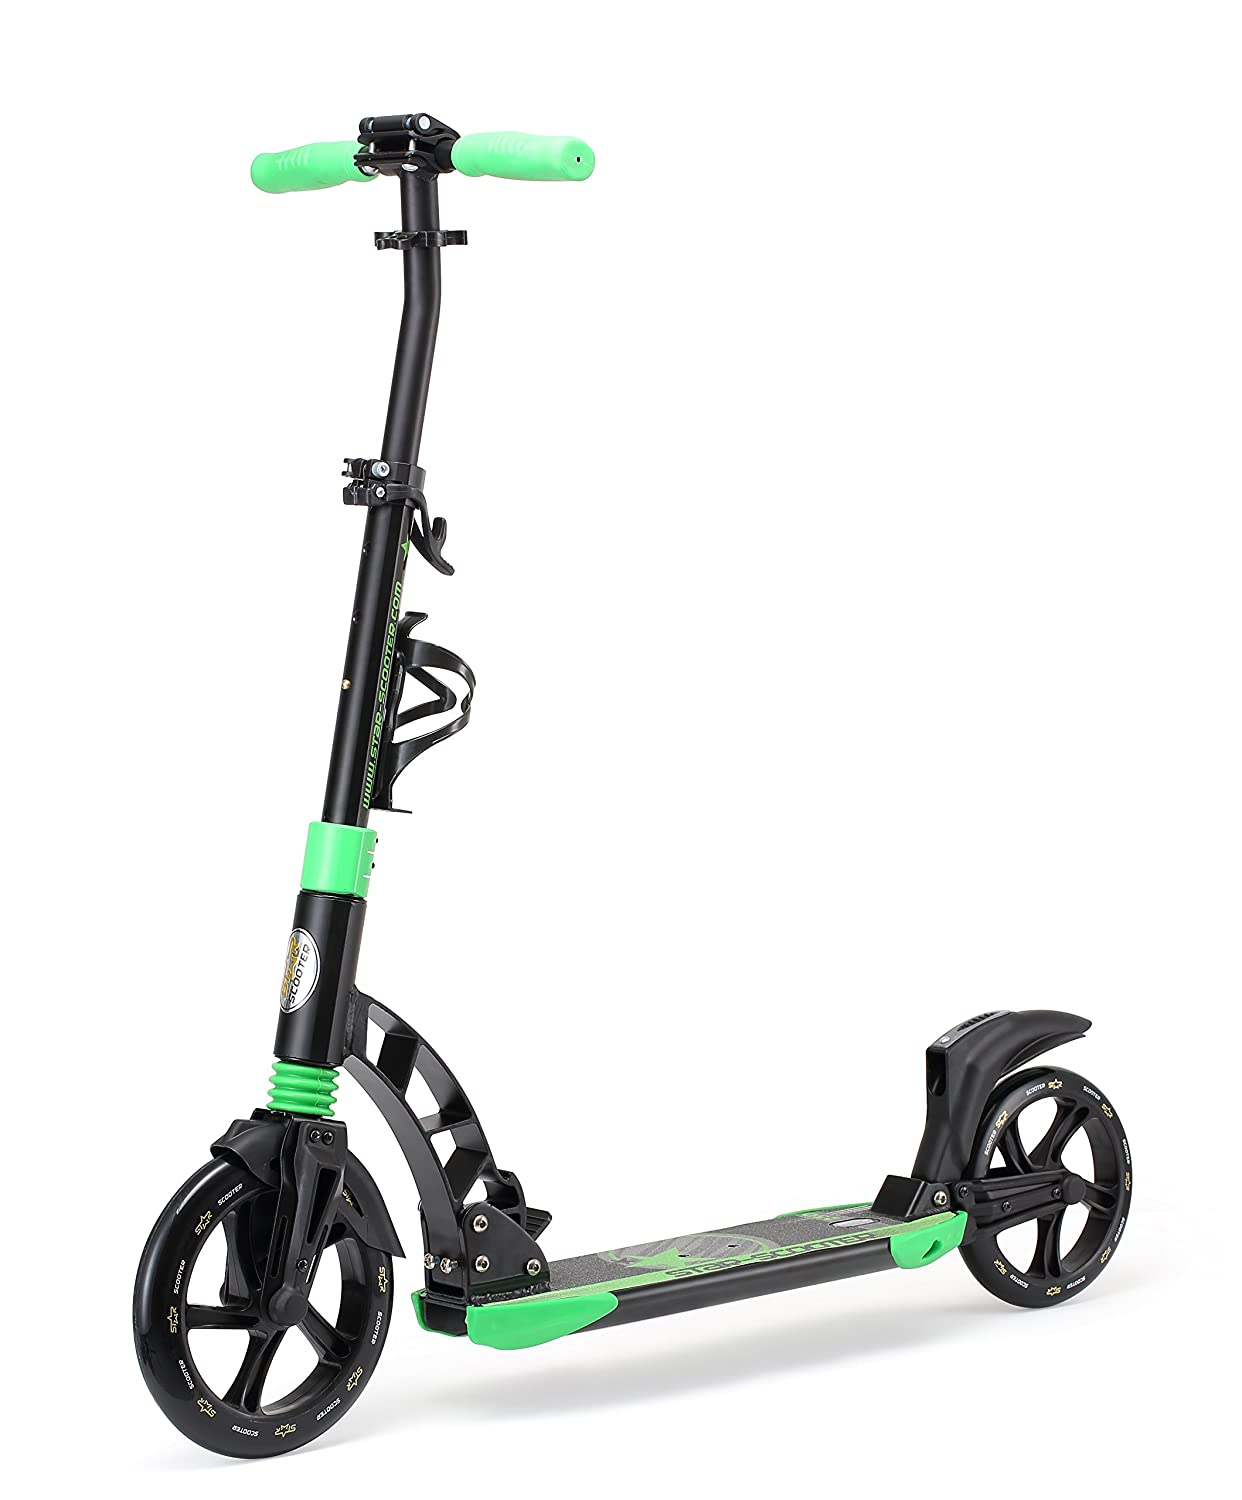 Star-Scooter Pro Sport Patinete 230mm Premium Big Wheel Plegable con suspensión Completa, para Adultos y niños Desde Aprox. 8 años ★ High End Edition ...